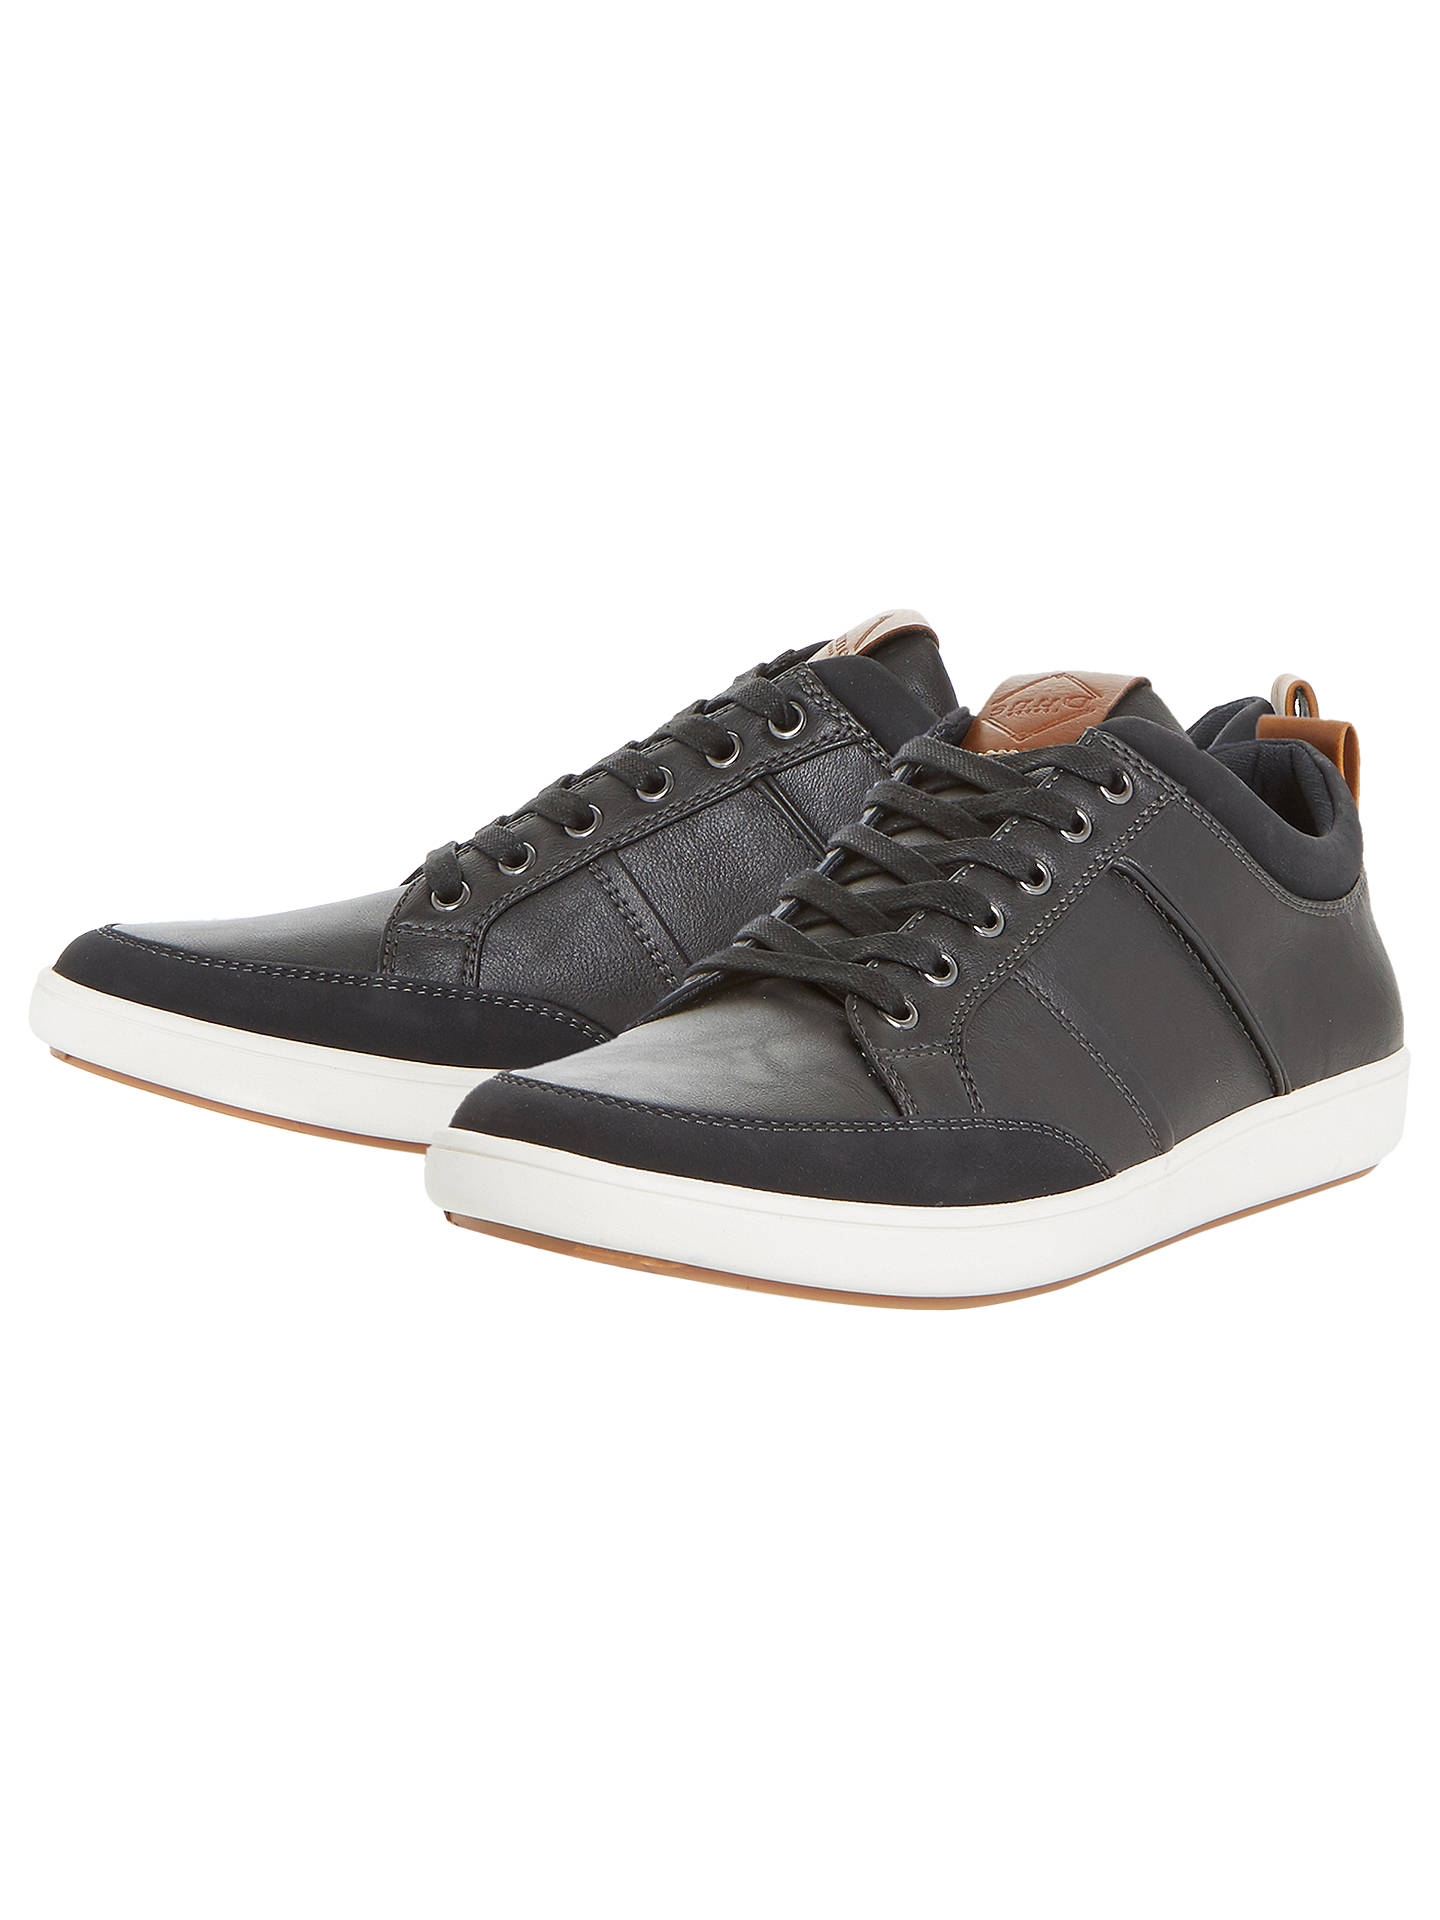 BuyDune Tristan Stitch Detail Bumper Trainers, Black, 6 Online at johnlewis.com